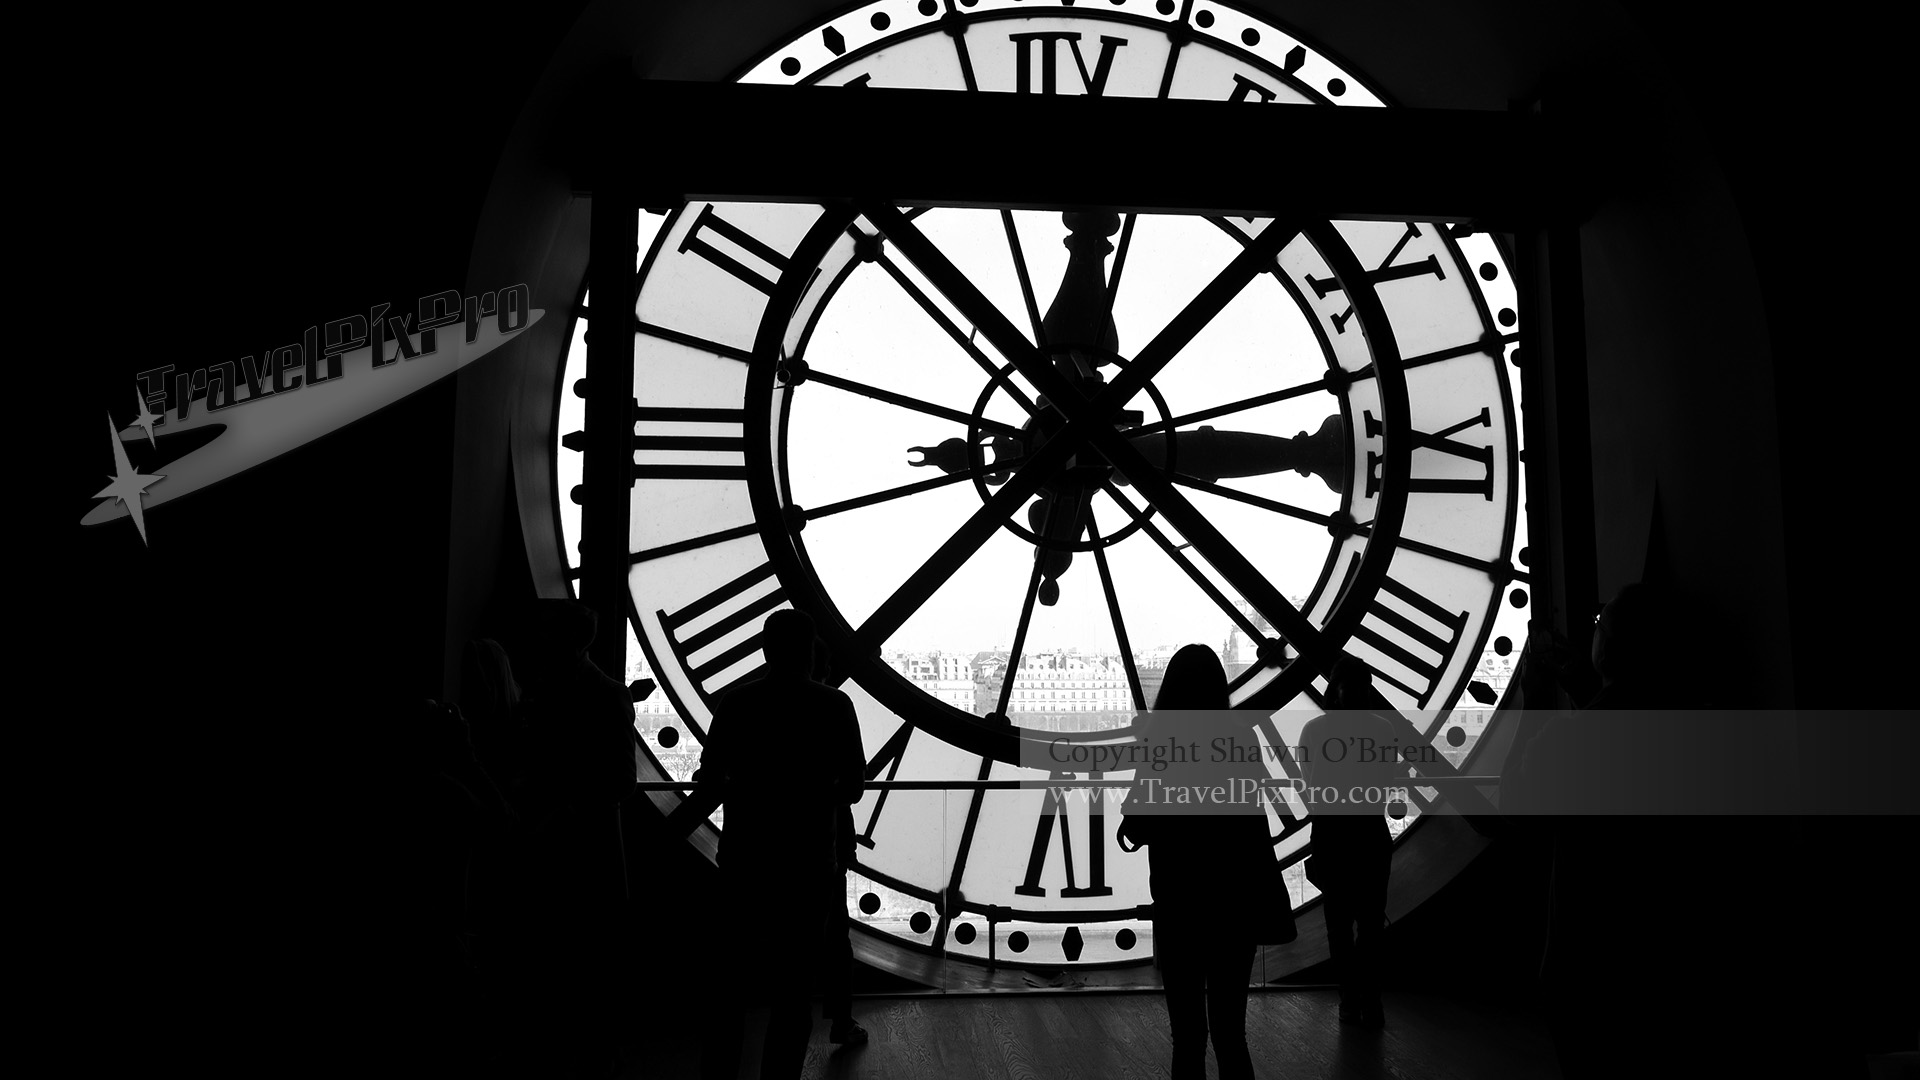 Inside Musee d'Orsay Clock Tower